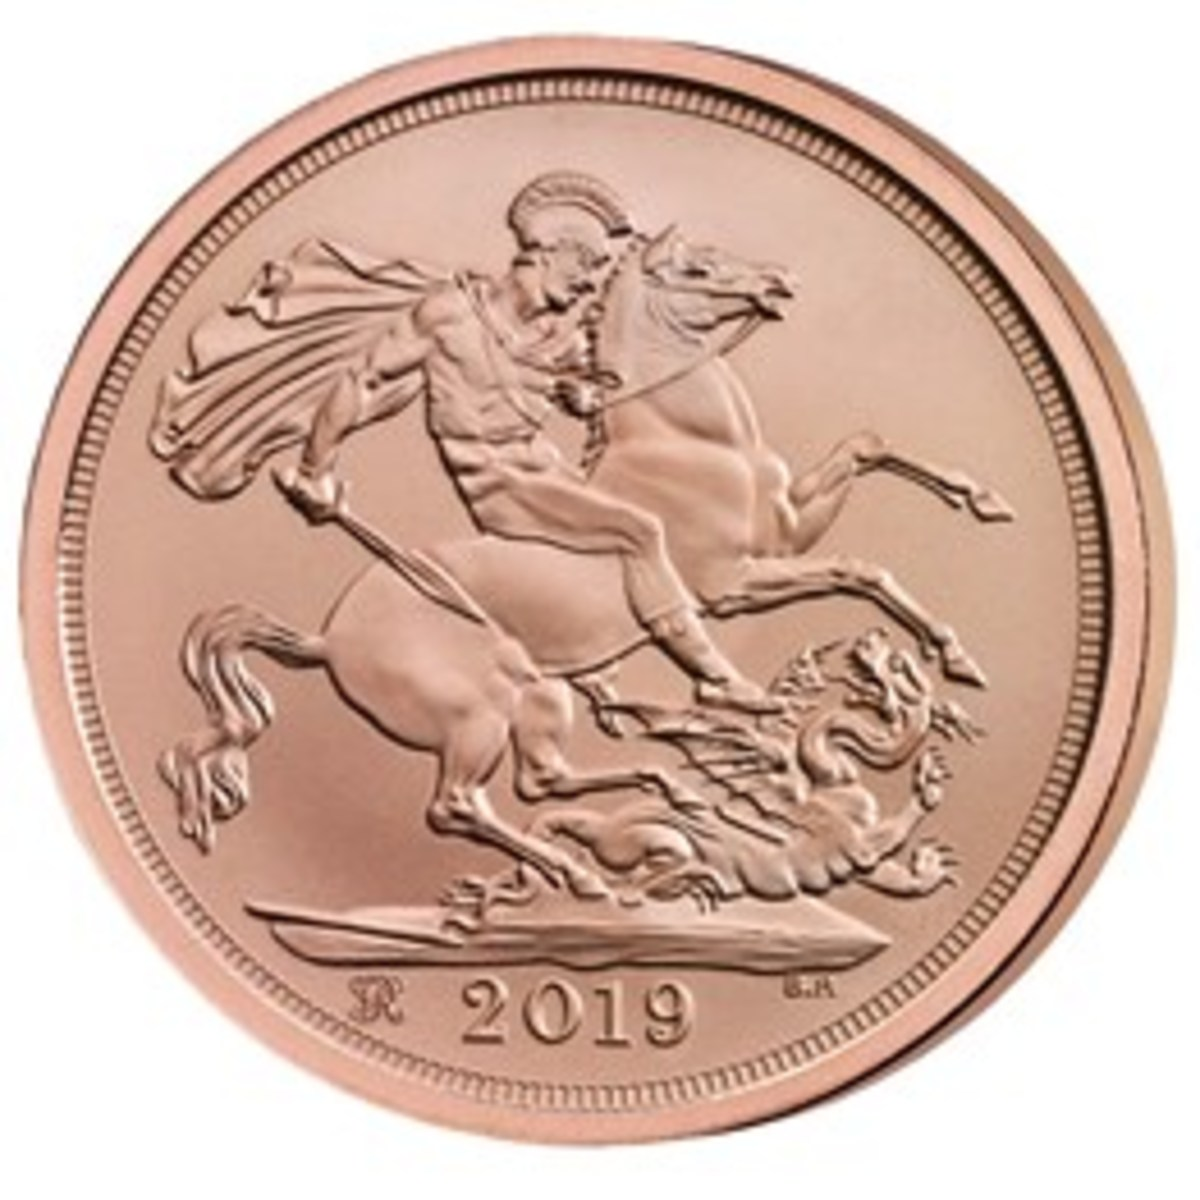 The special 2019 edition of the Sovereign to mark Queen Victoria's 200th anniversary since birth. (Image courtesy of The Royal Mint.)